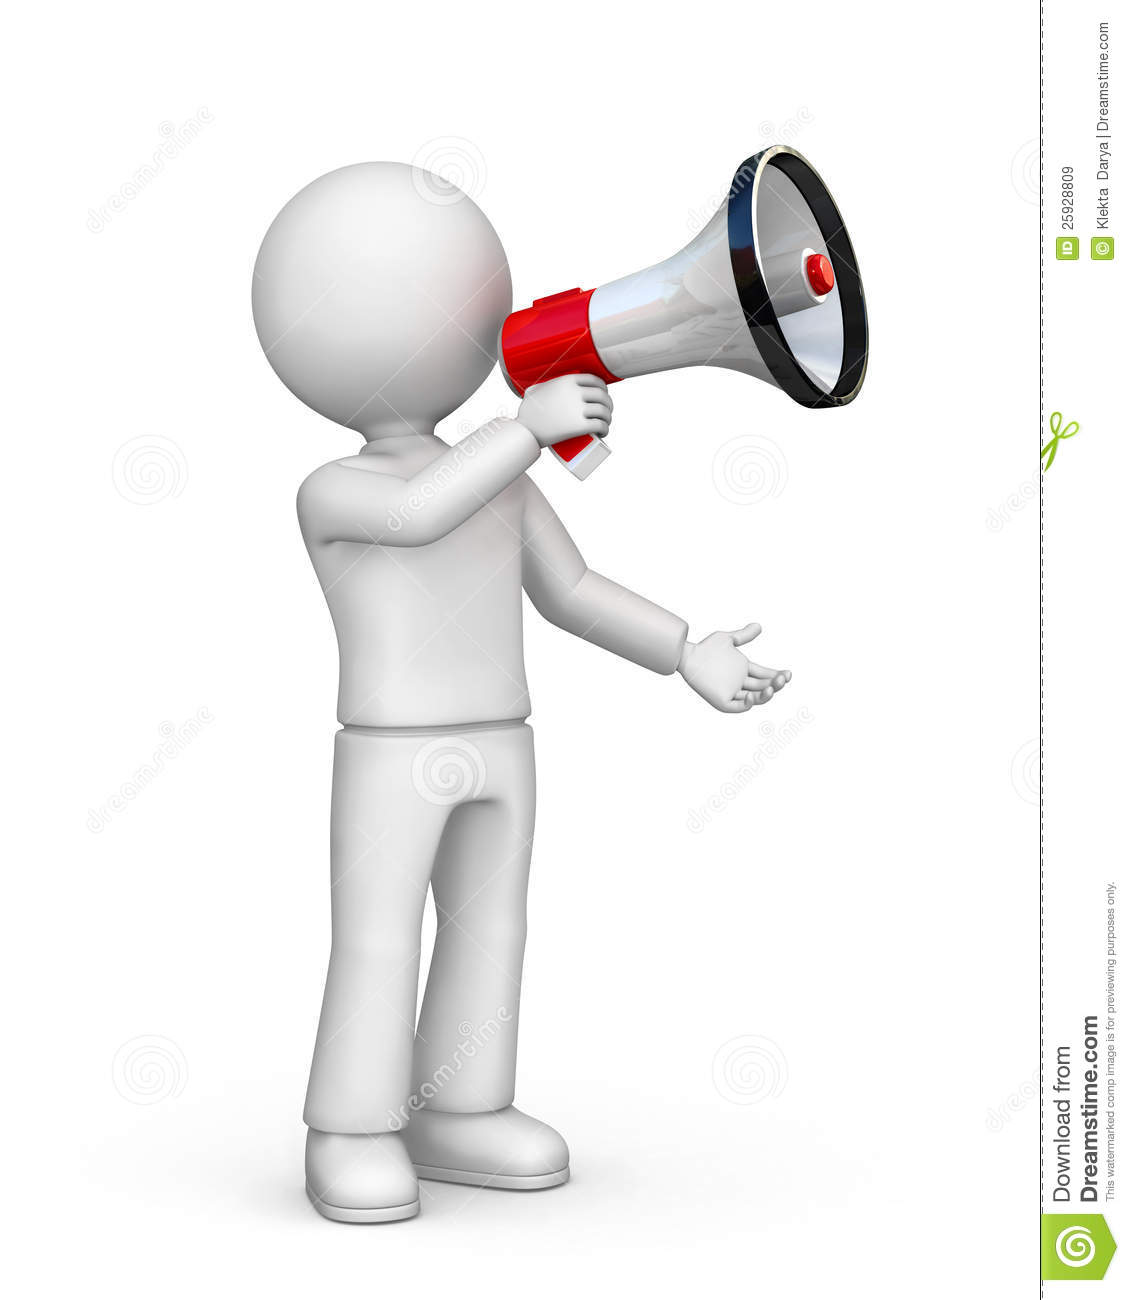 ... of cartoon person with blank face holding megaphone, white background